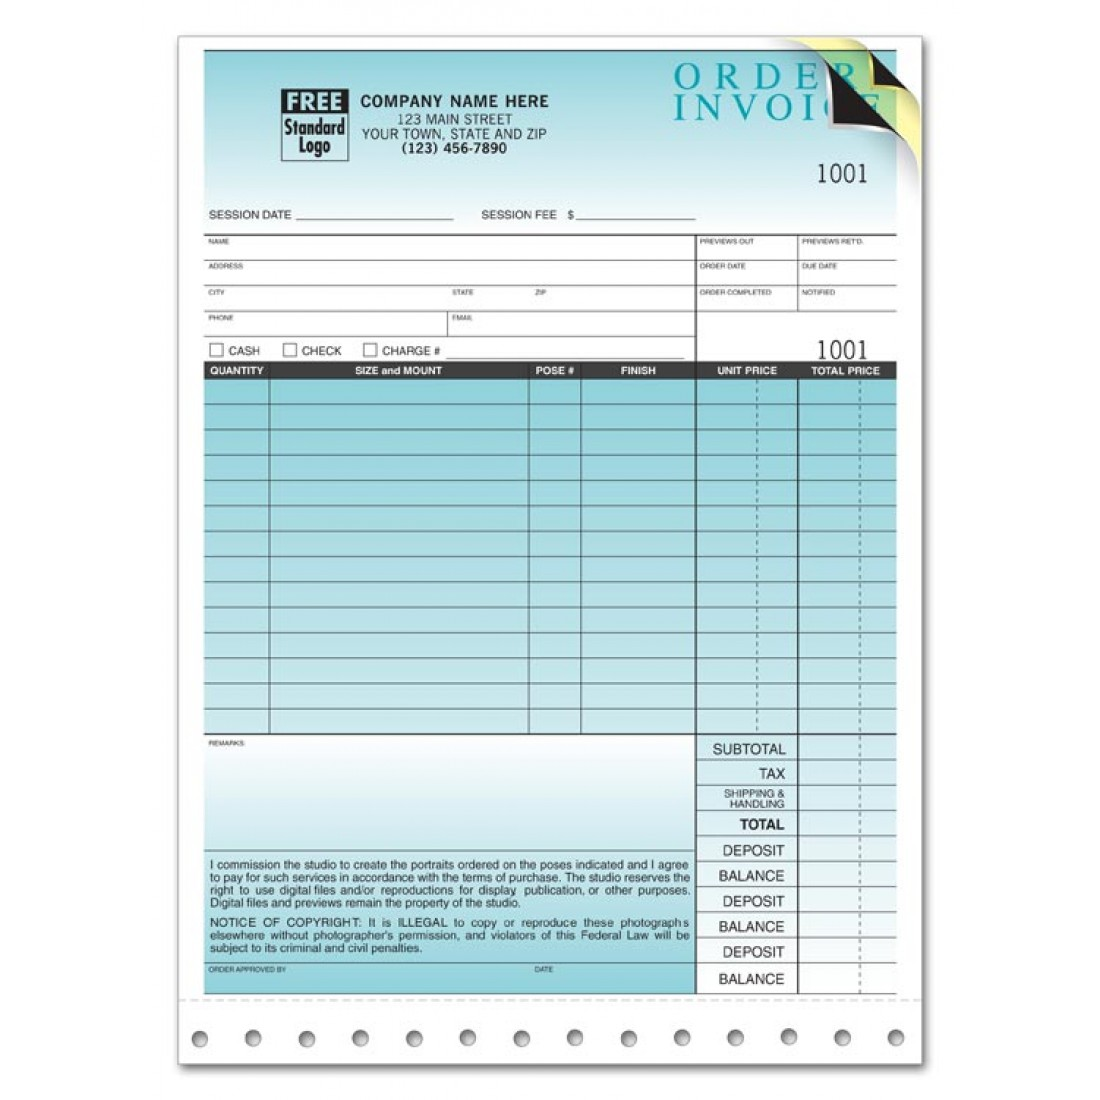 Professional Invoices - Photo Invoices + Envelope